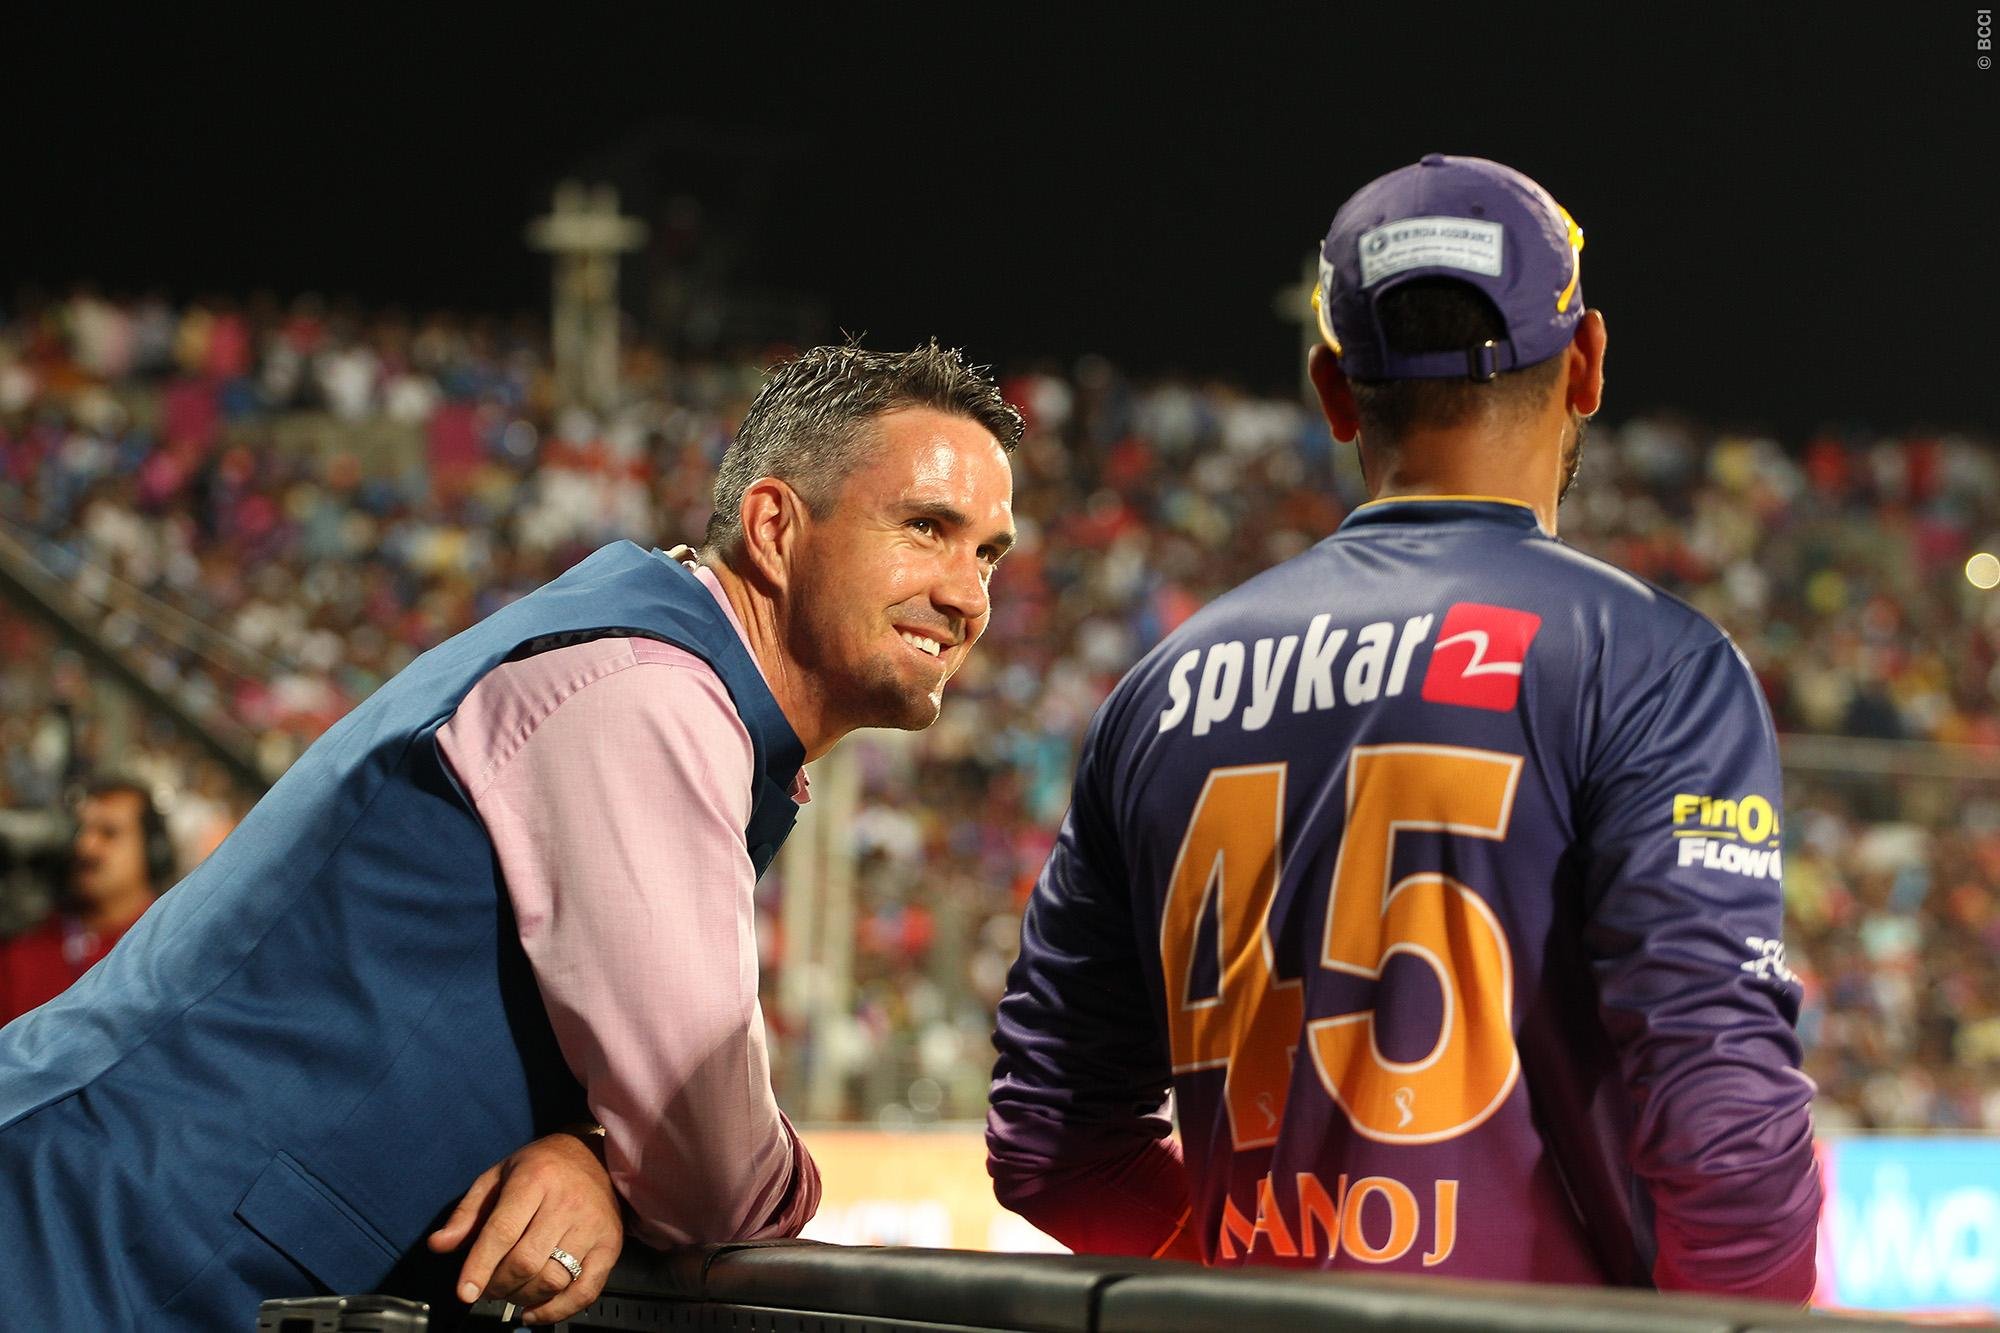 here we are also going to recall an old video in which MS Dhoni's savage reply to commentator Kevin Pietersen had entertained the fans a lot.